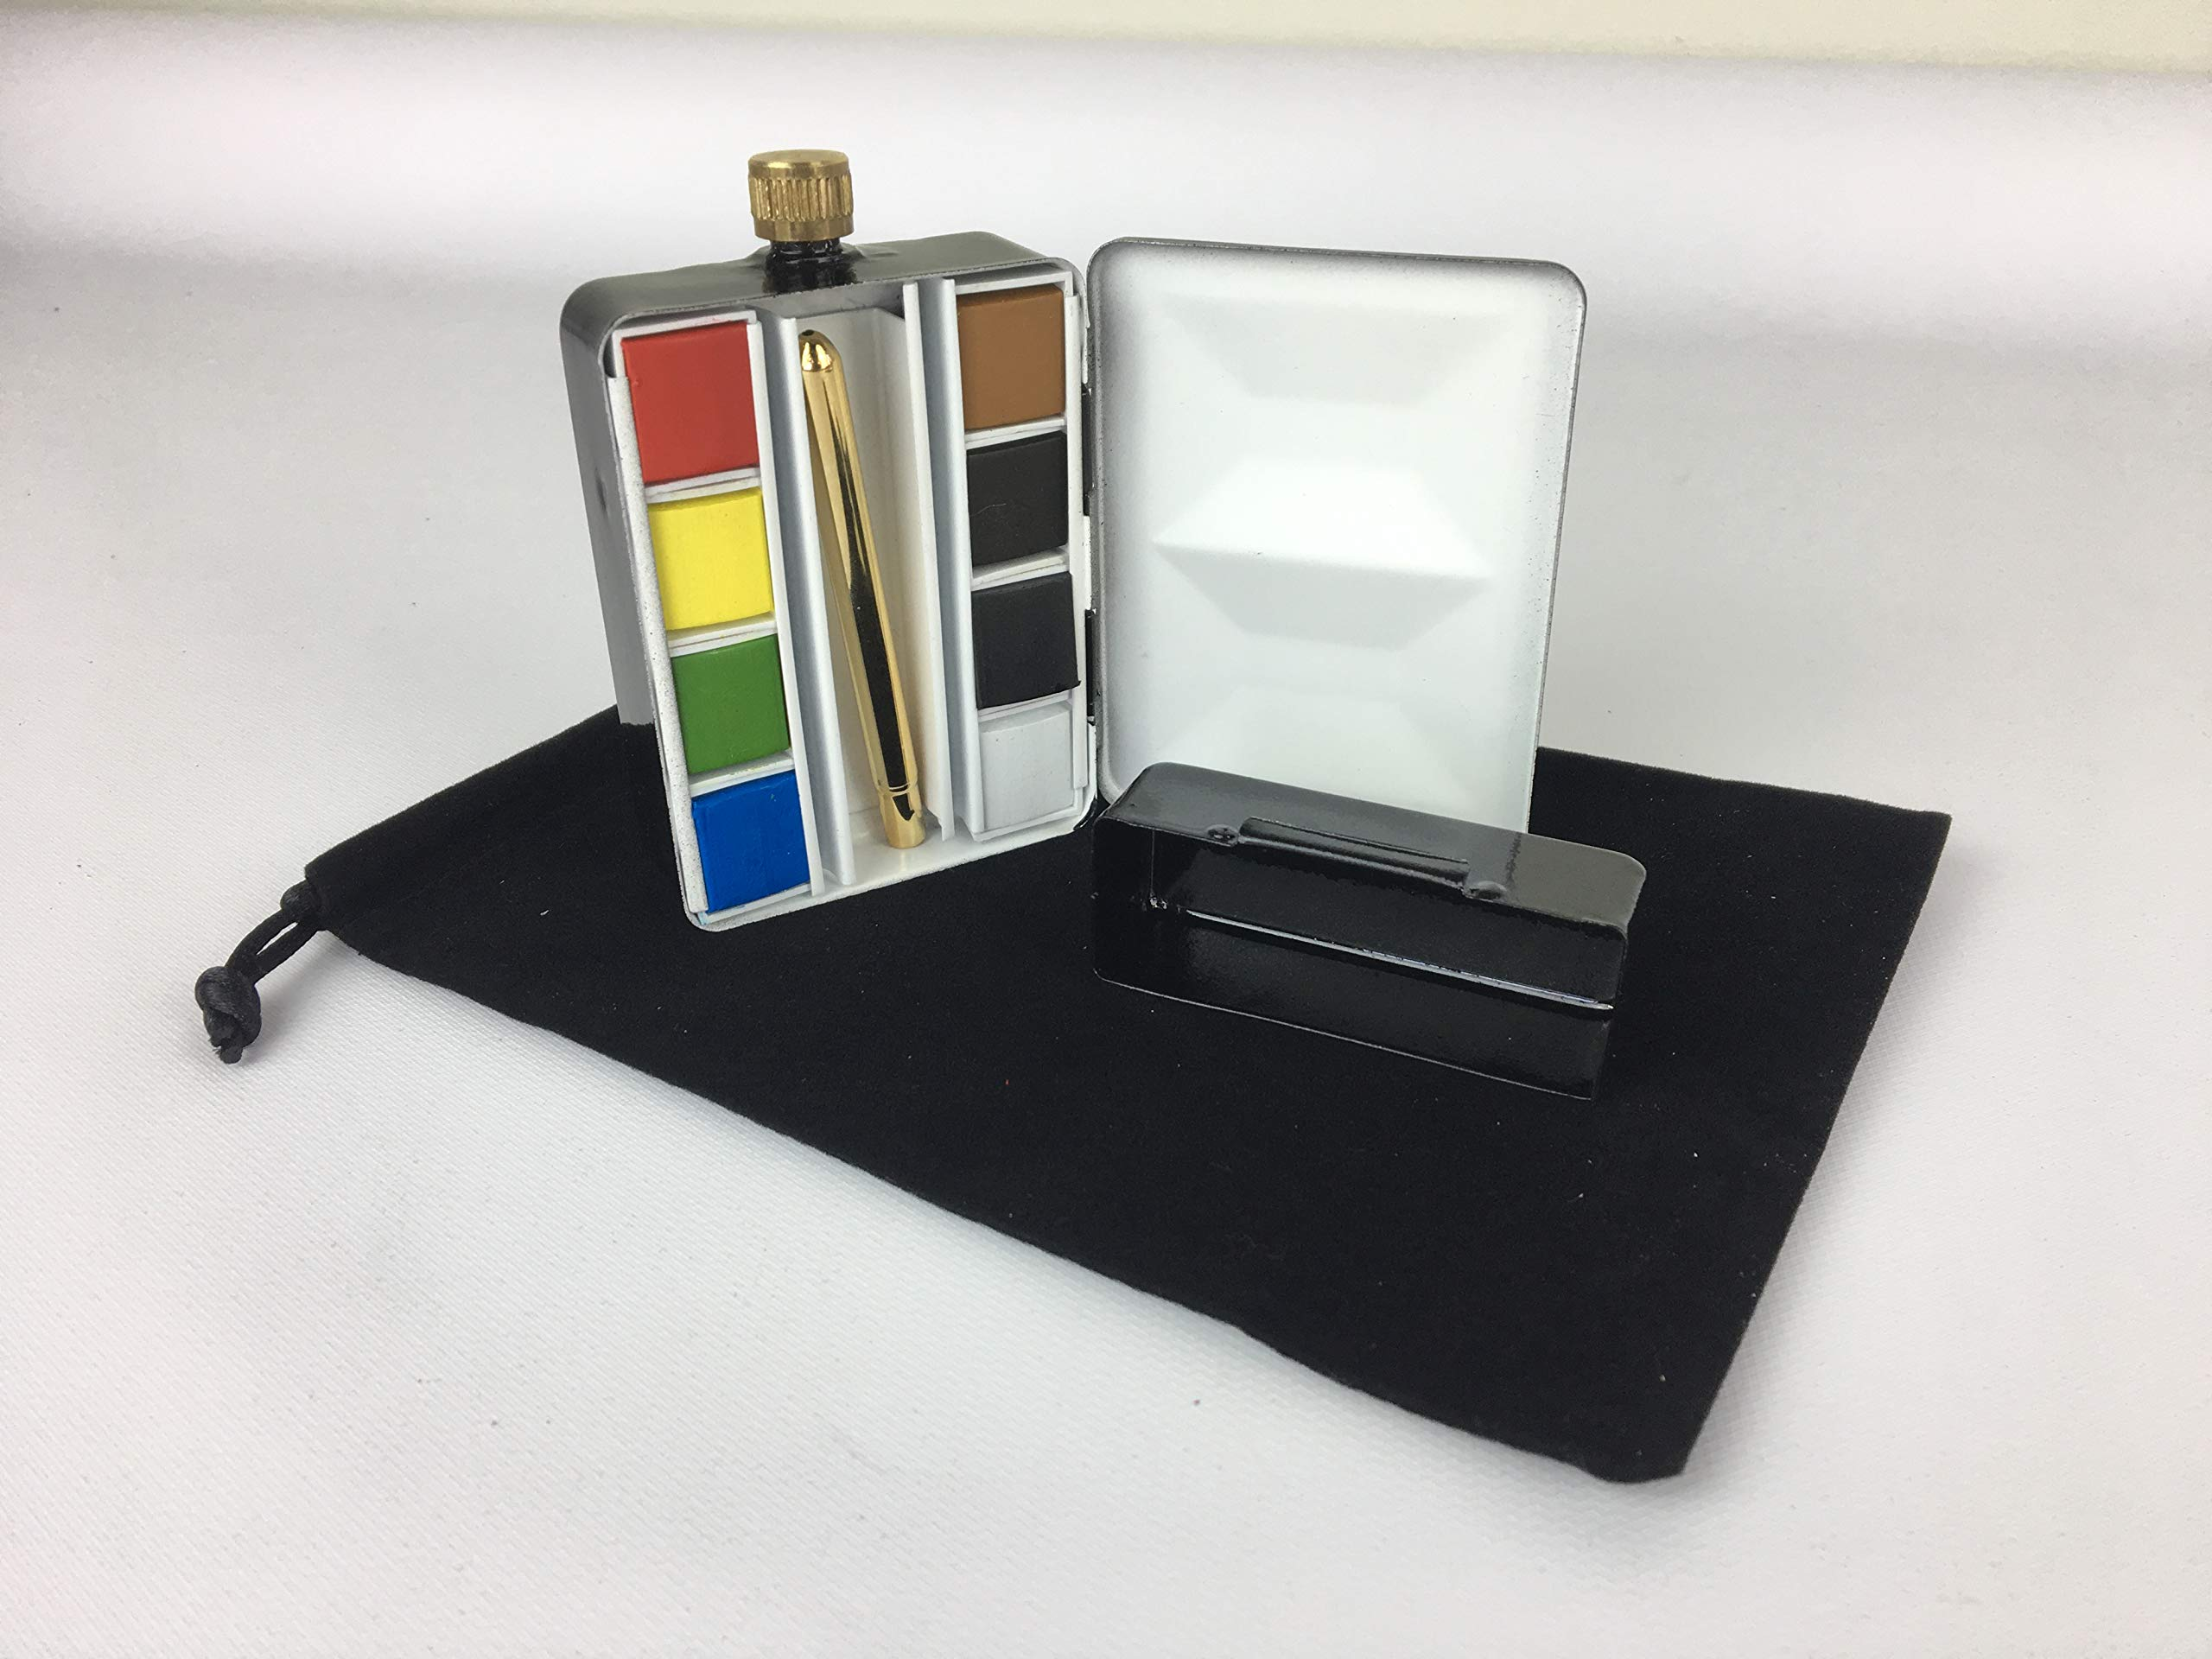 Whiskey Painters Empty Artist 8 Half Pan, Pocket Size,Travel Friendly Flask Palette & Water Reservoir Holder Hand Made in Italy by Whiskey Painters